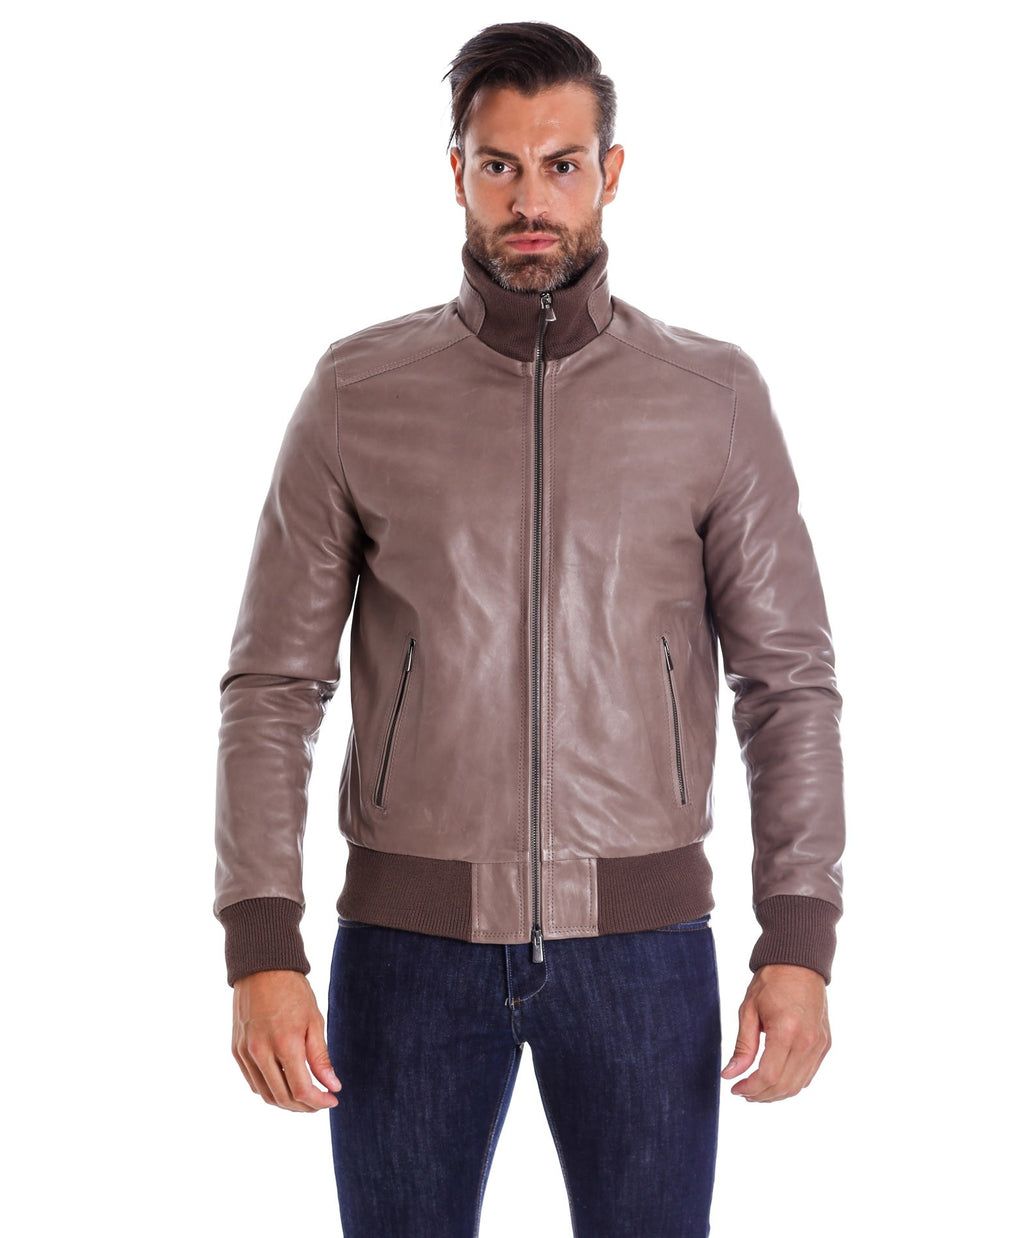 Men's Leather Jacket genuine soft leather style bomber grey color, Bomber